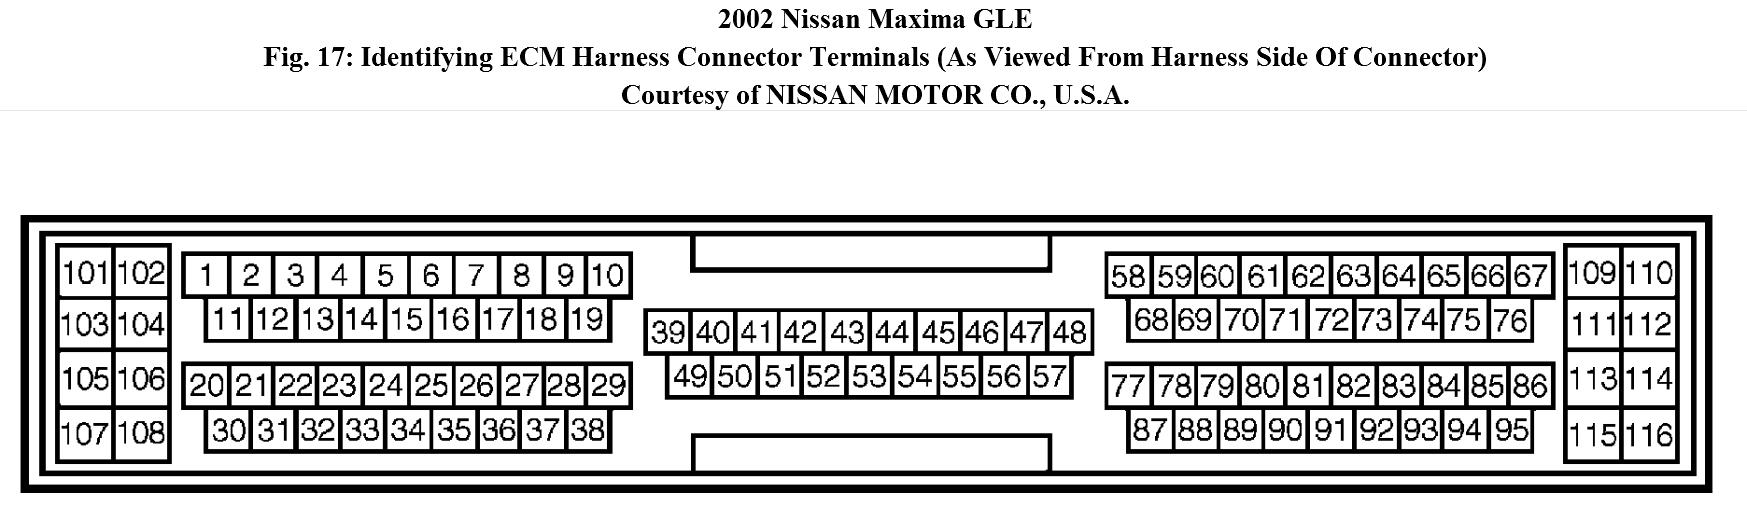 Code P1800 I Have To Pass Emissions Inspection But Had 2003 Nissan Murano Wiring Harness Thumb